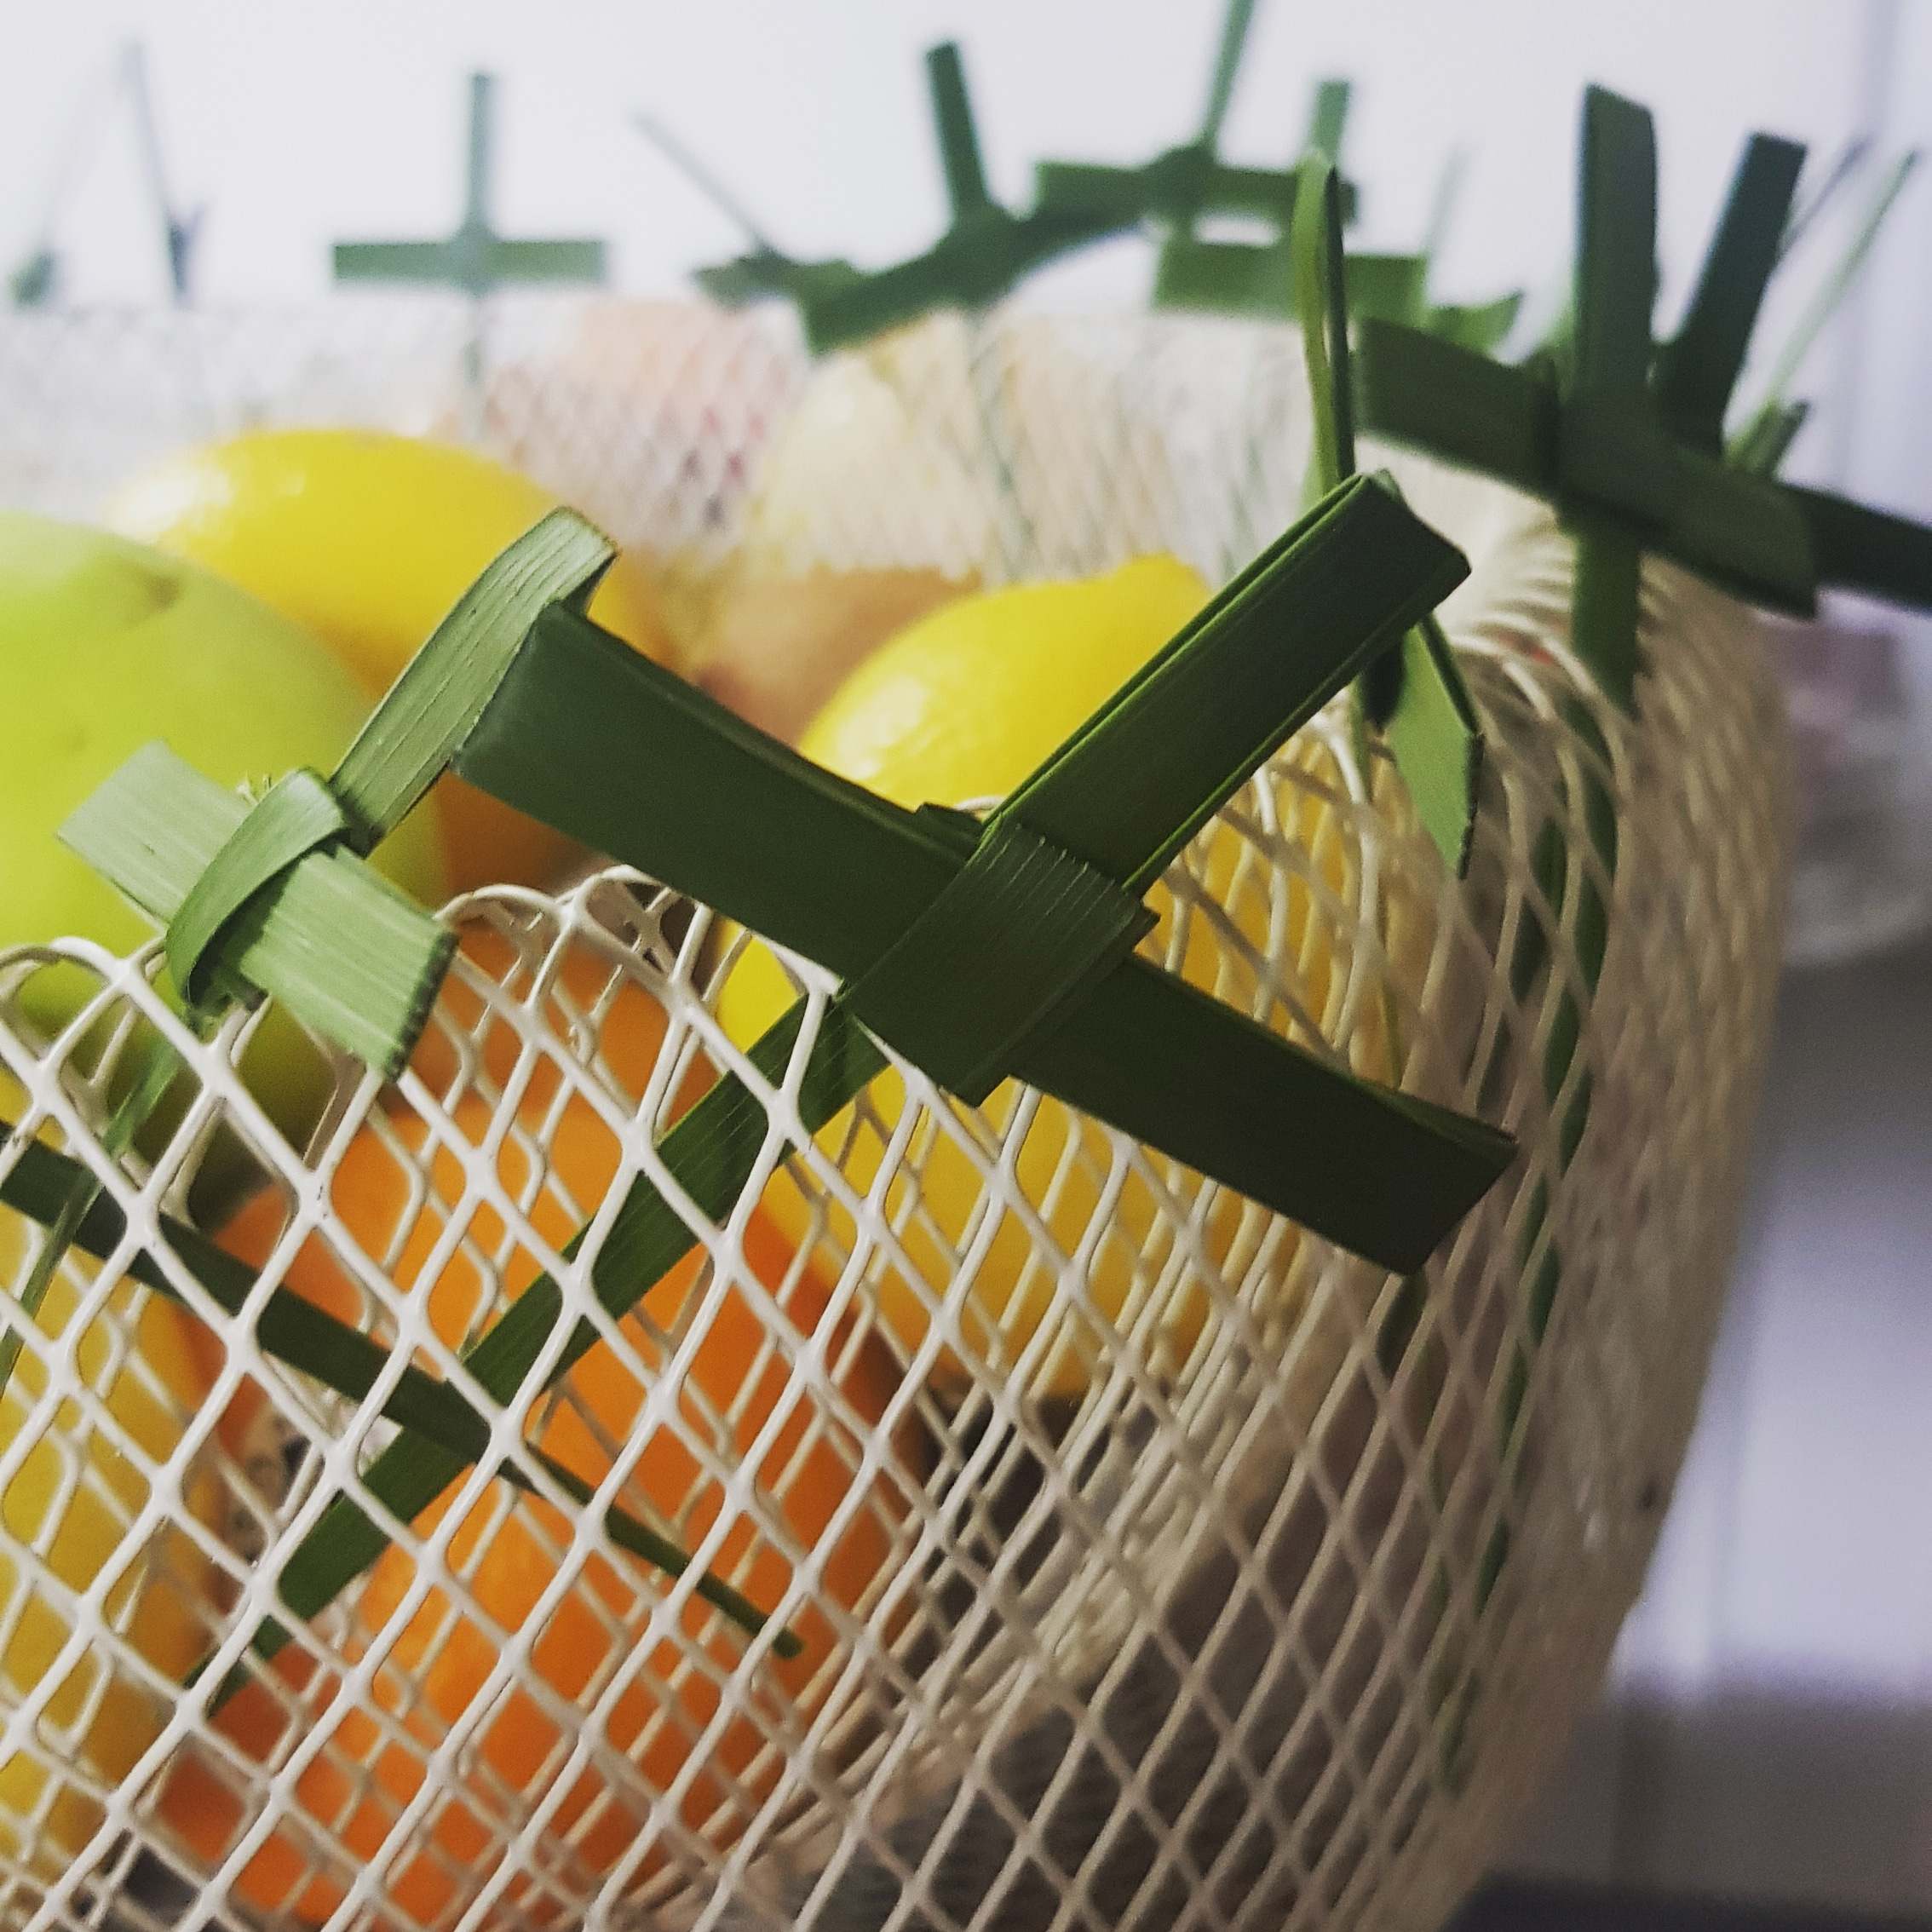 ash wednesday crosses are tucked into the edge of a mesh fruit bowl lent 2020